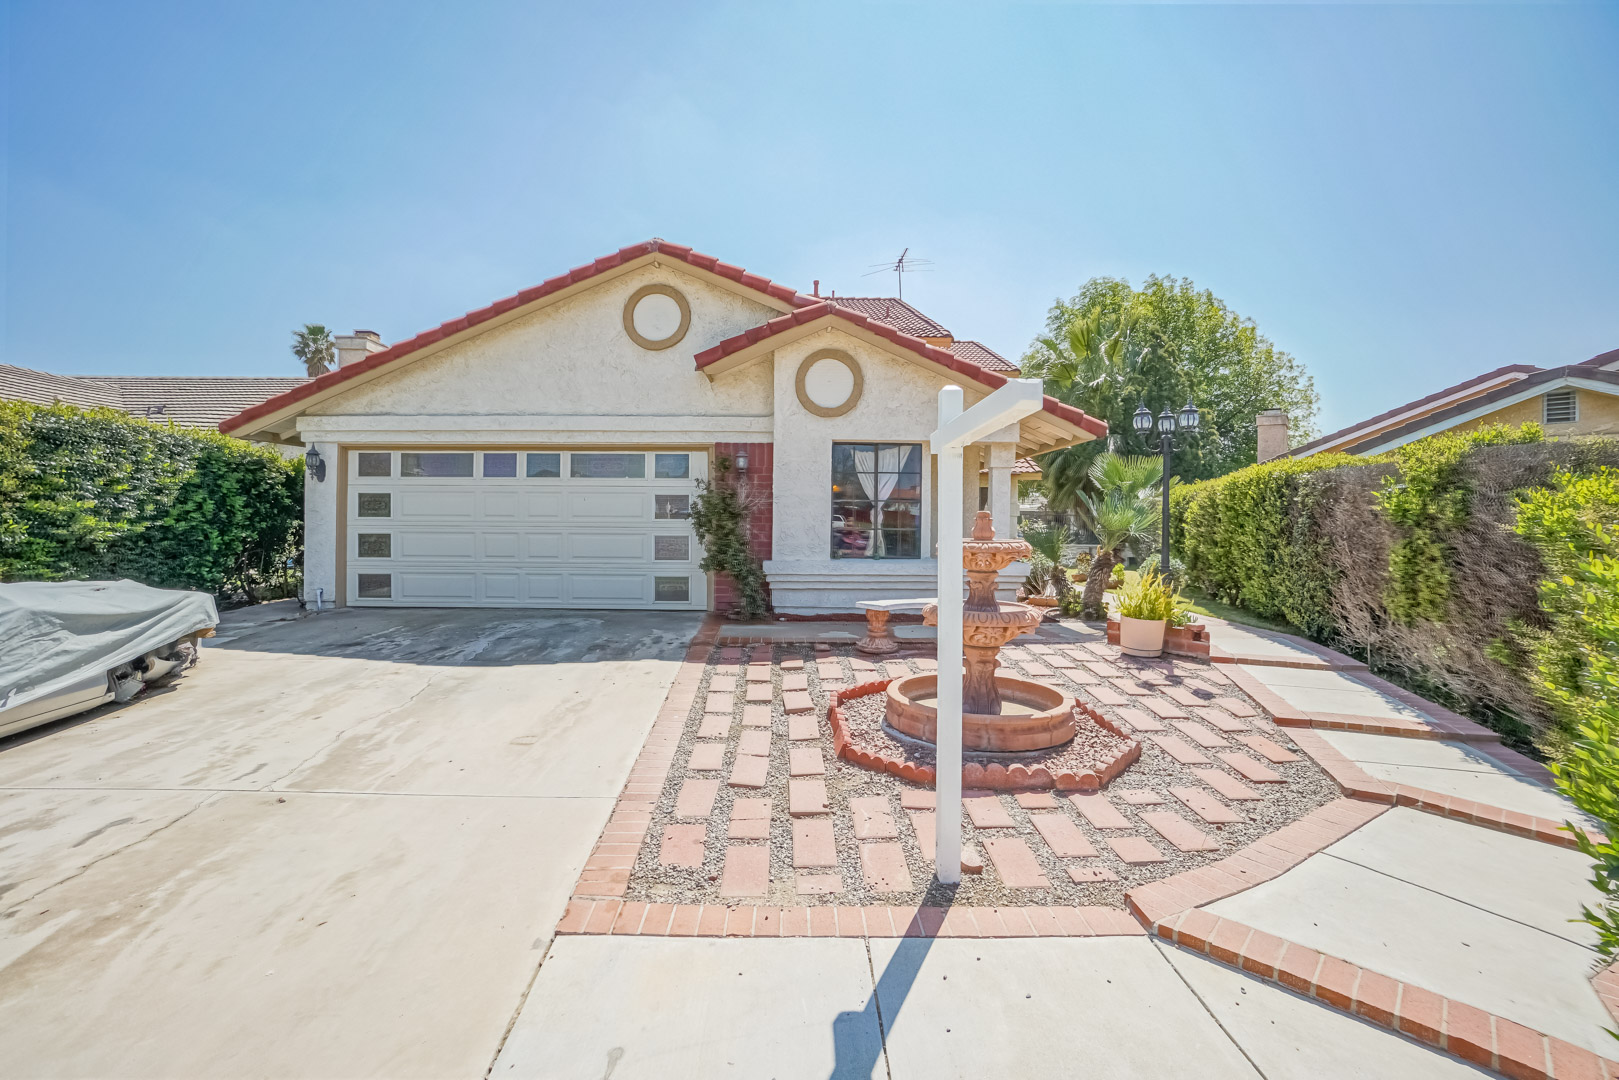 24297 Wildwood St, Moreno Valley CA 92551